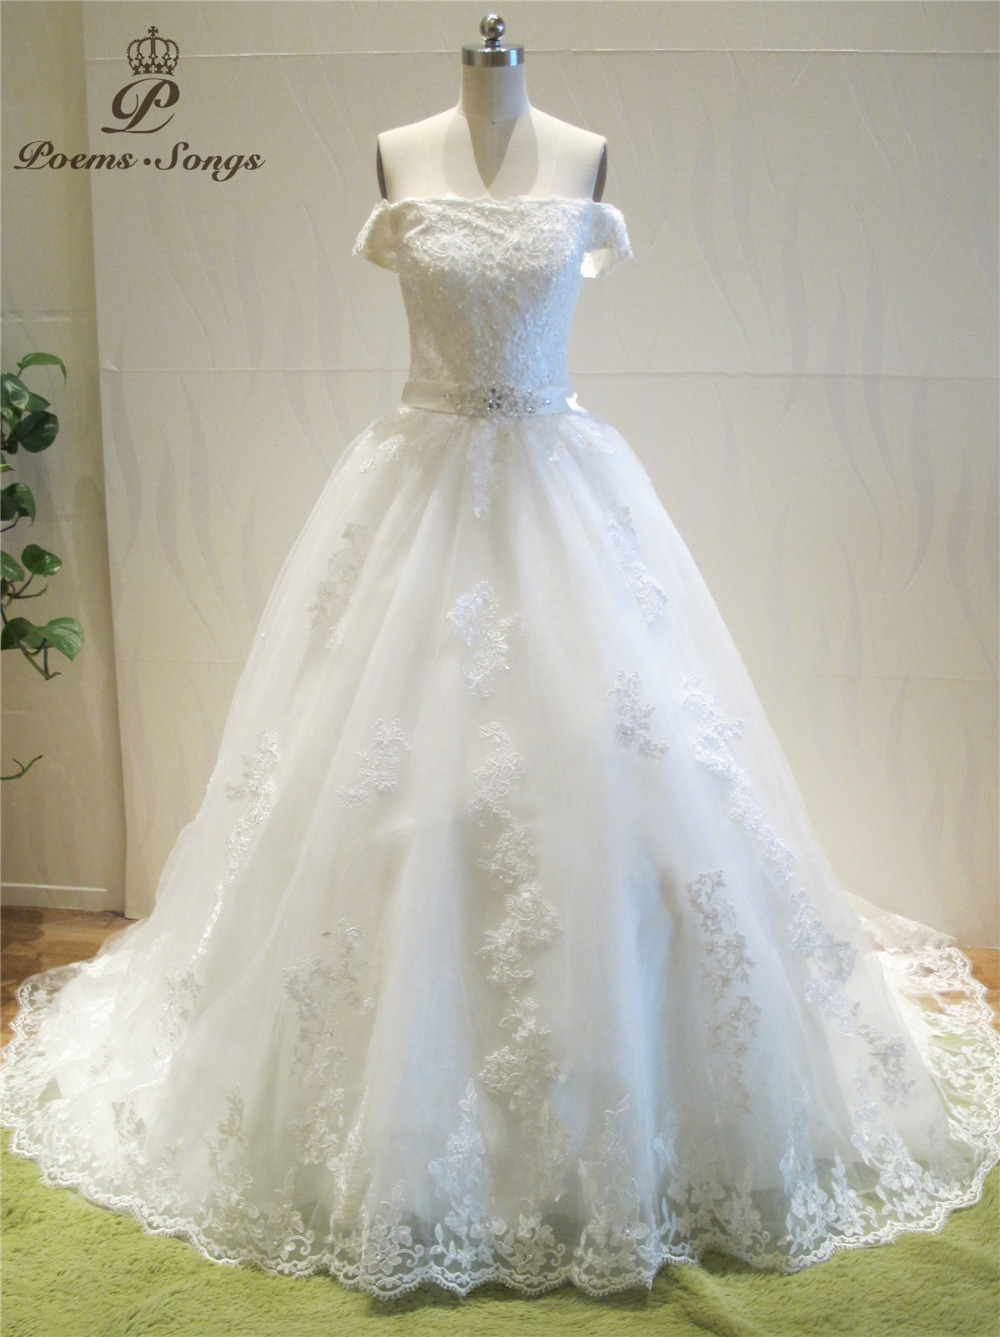 Poemssongs 2017 Luxury Custome Made High Quality Boat Neck Style Wedding Dresses For Wedding Vestido De